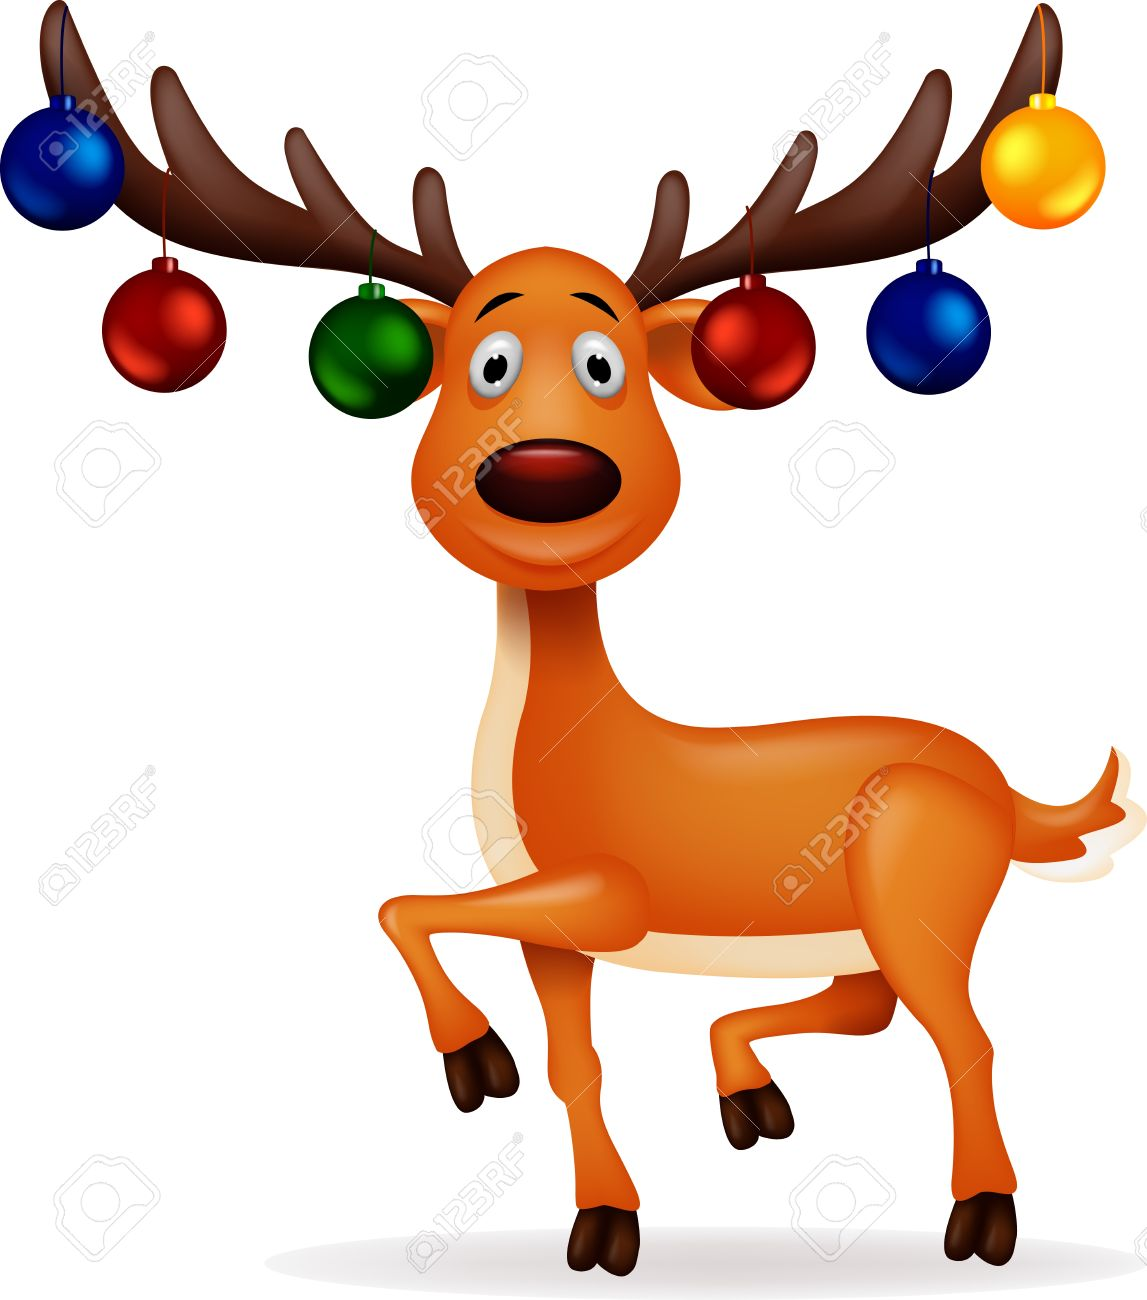 34,803 Christmas Reindeer Stock Vector Illustration And Royalty.